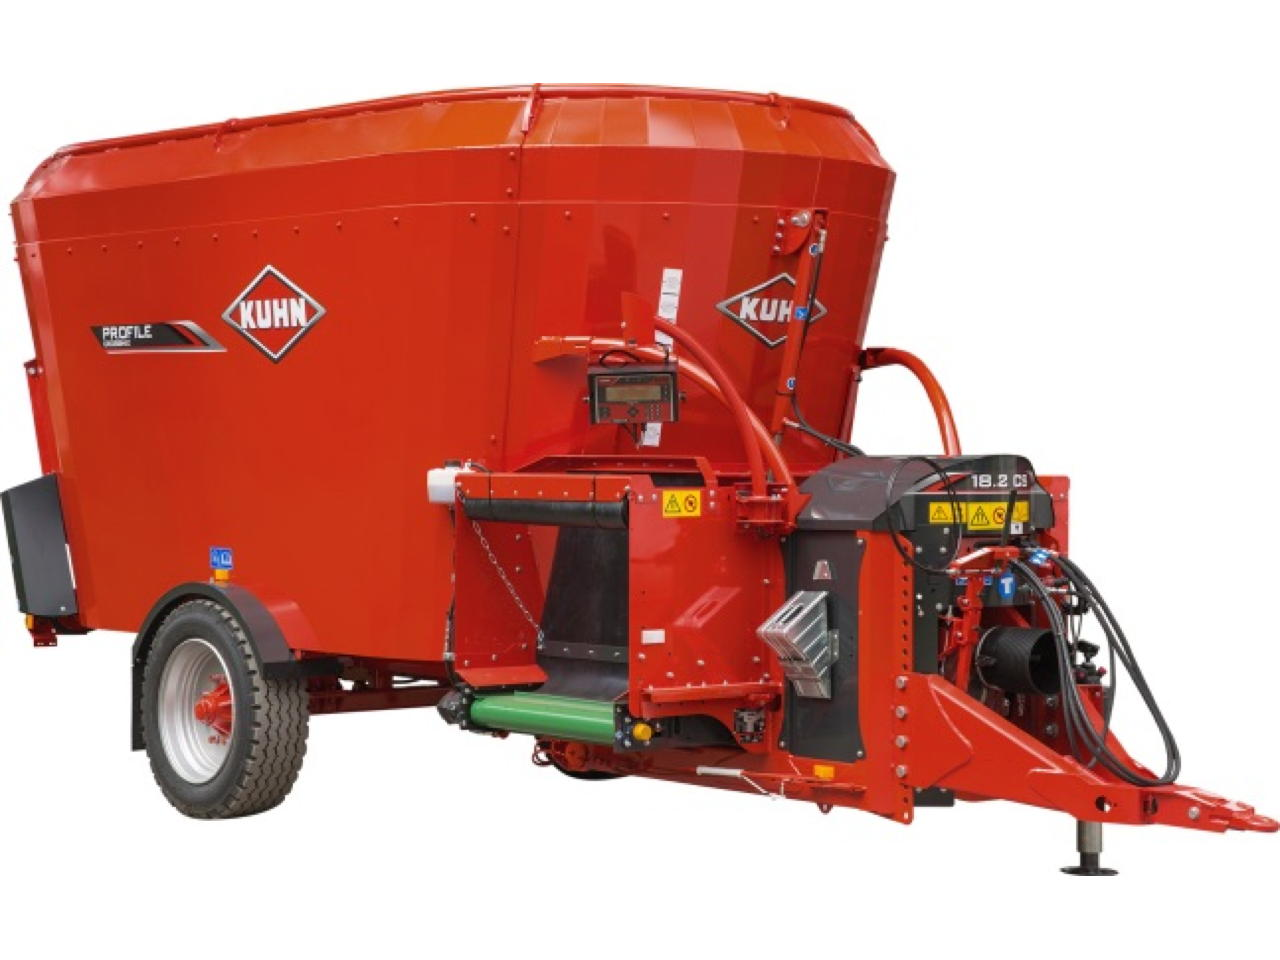 Kuhn Profile Crossmix Profile Crossmix 16.2 CS